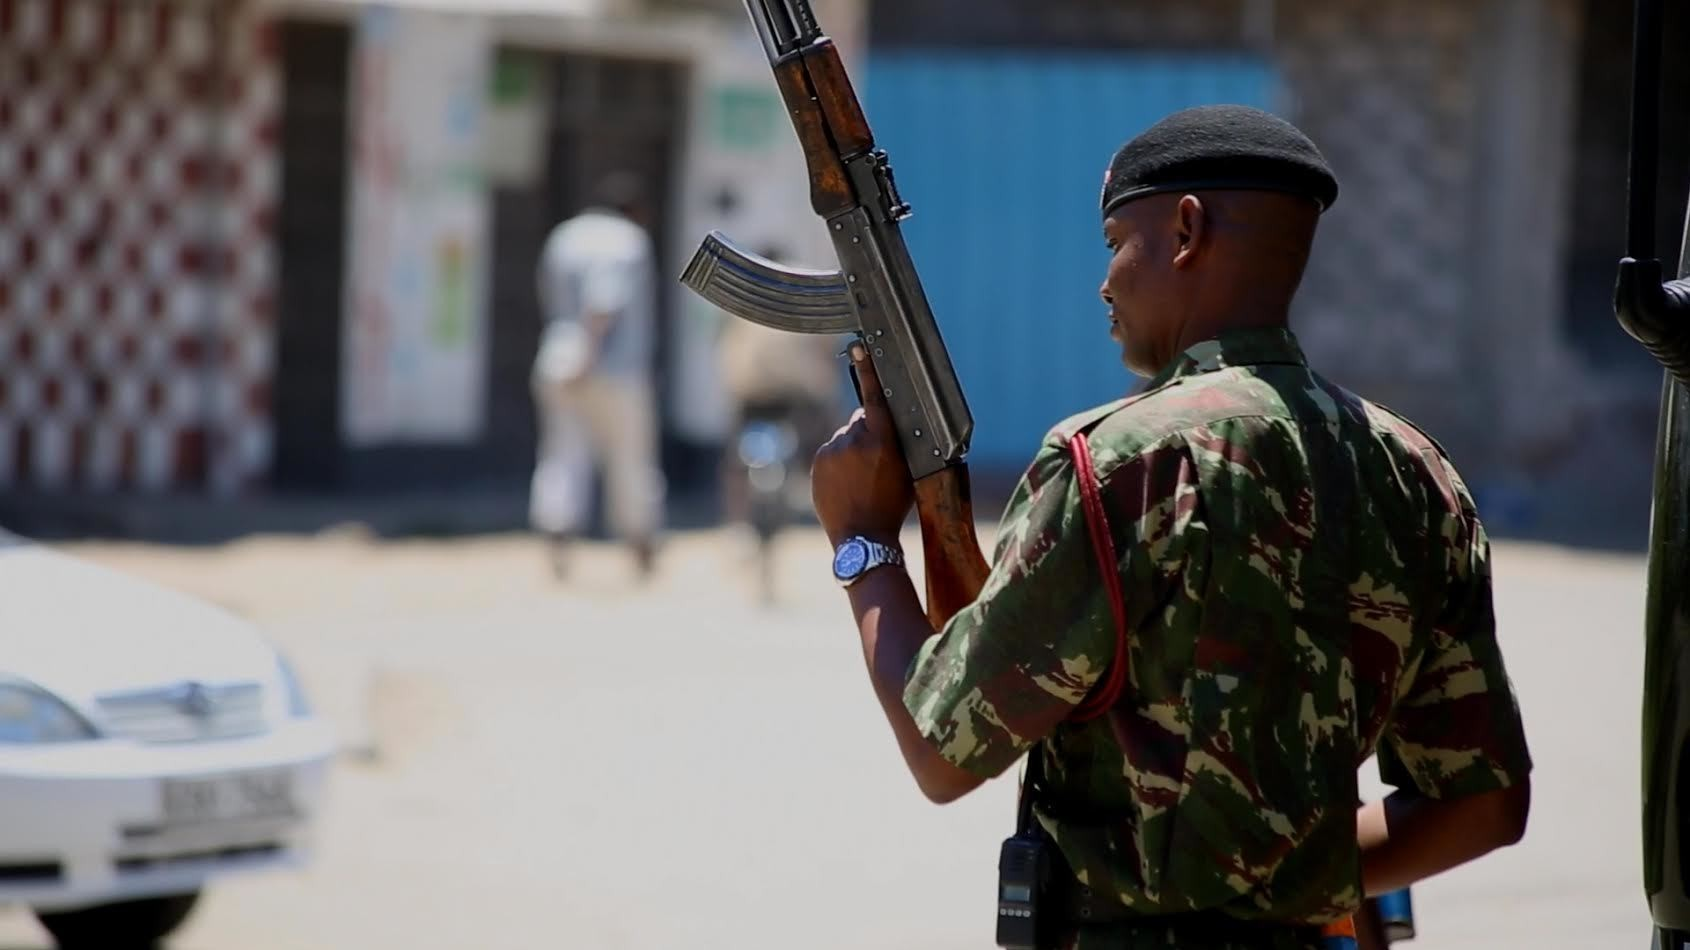 Exclusive: Leaked Report Details Brutal Abuses by Kenyan Counterterrorism Forces